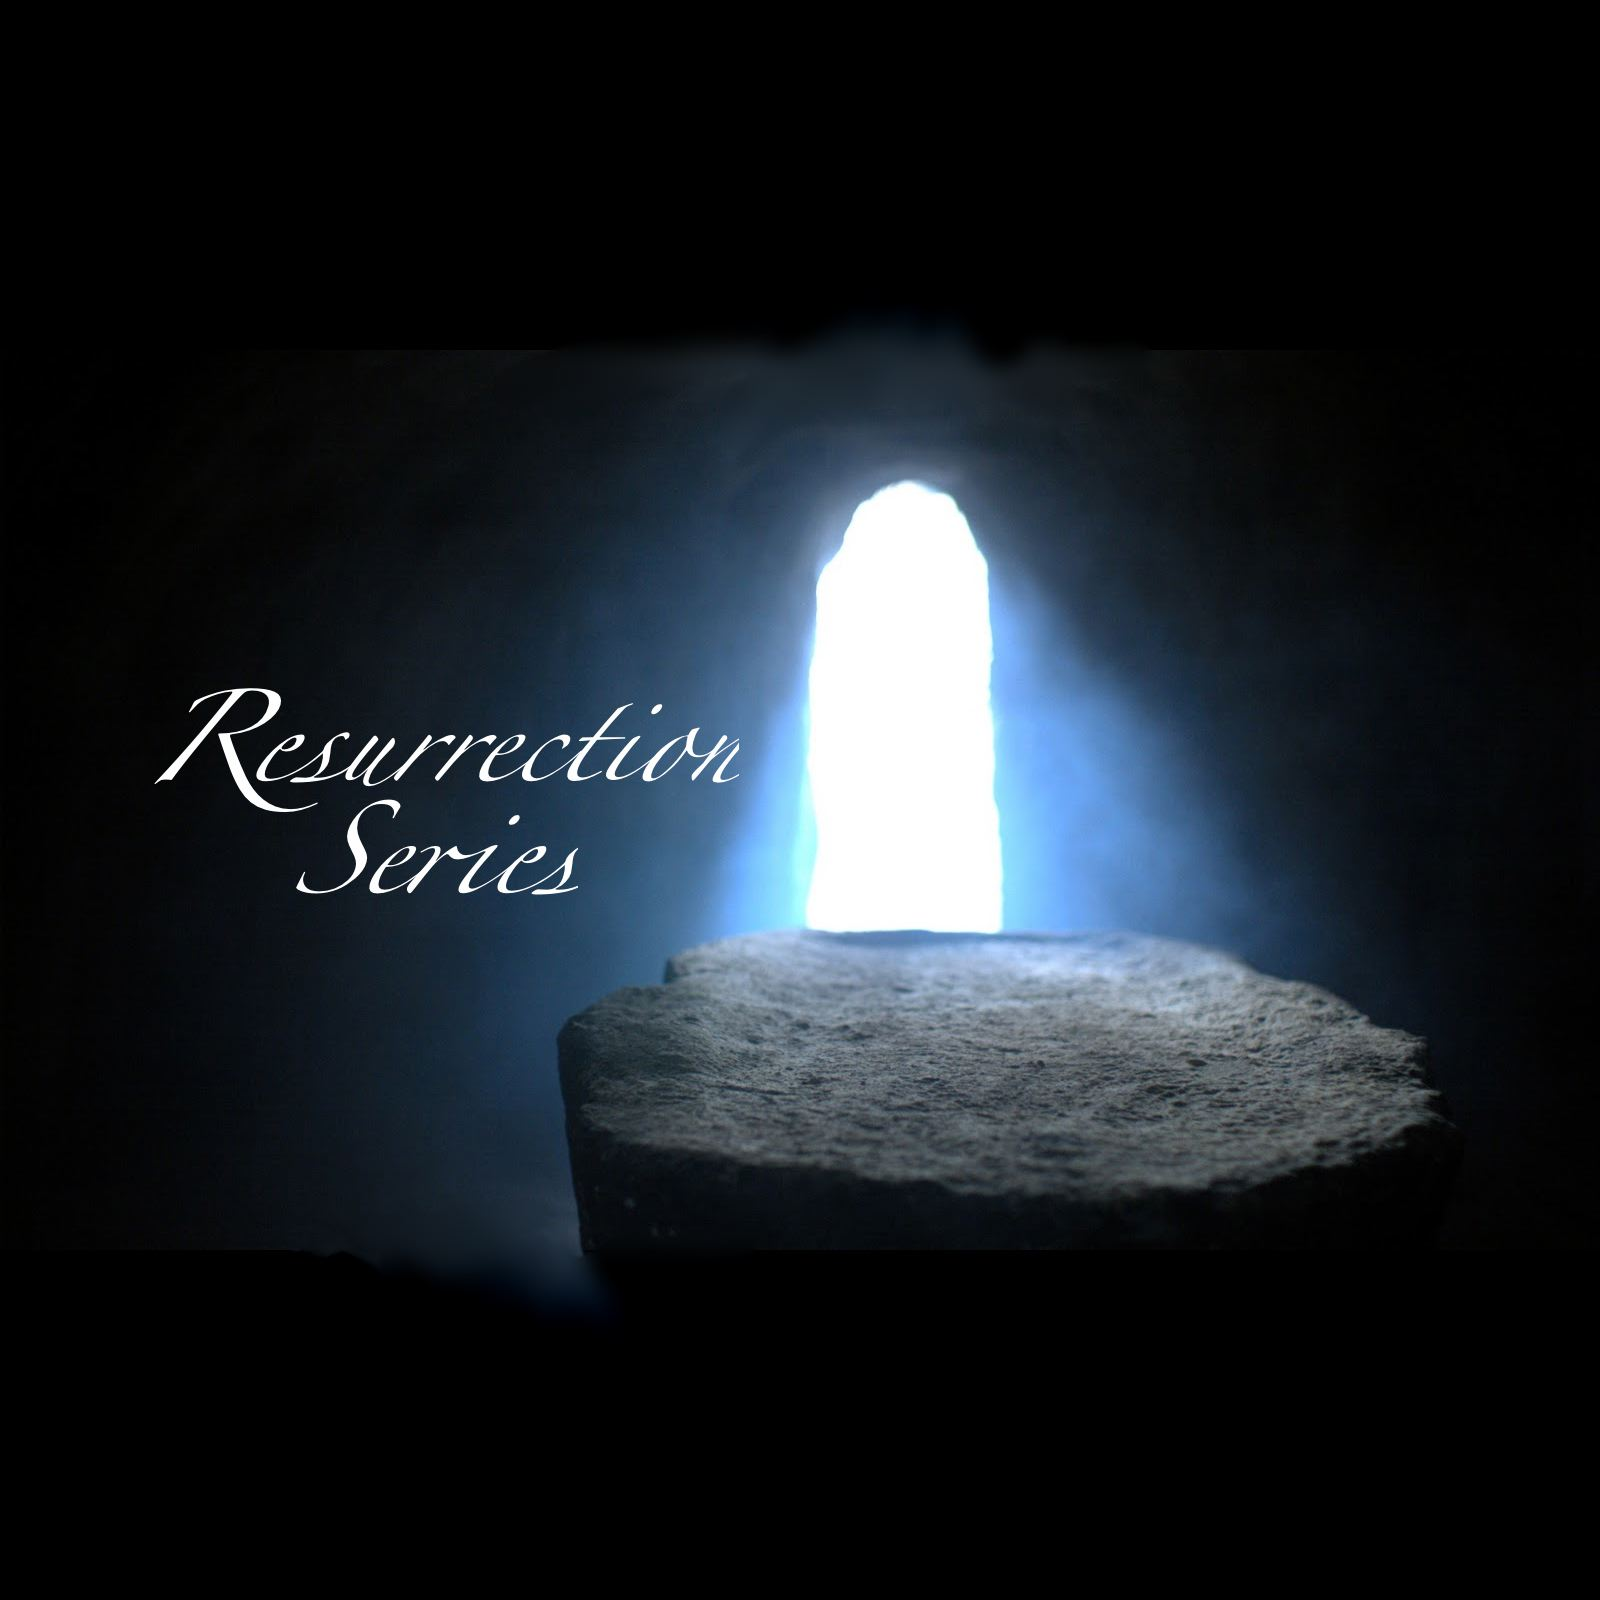 4-20-14 Resurrection Series: My Restoration